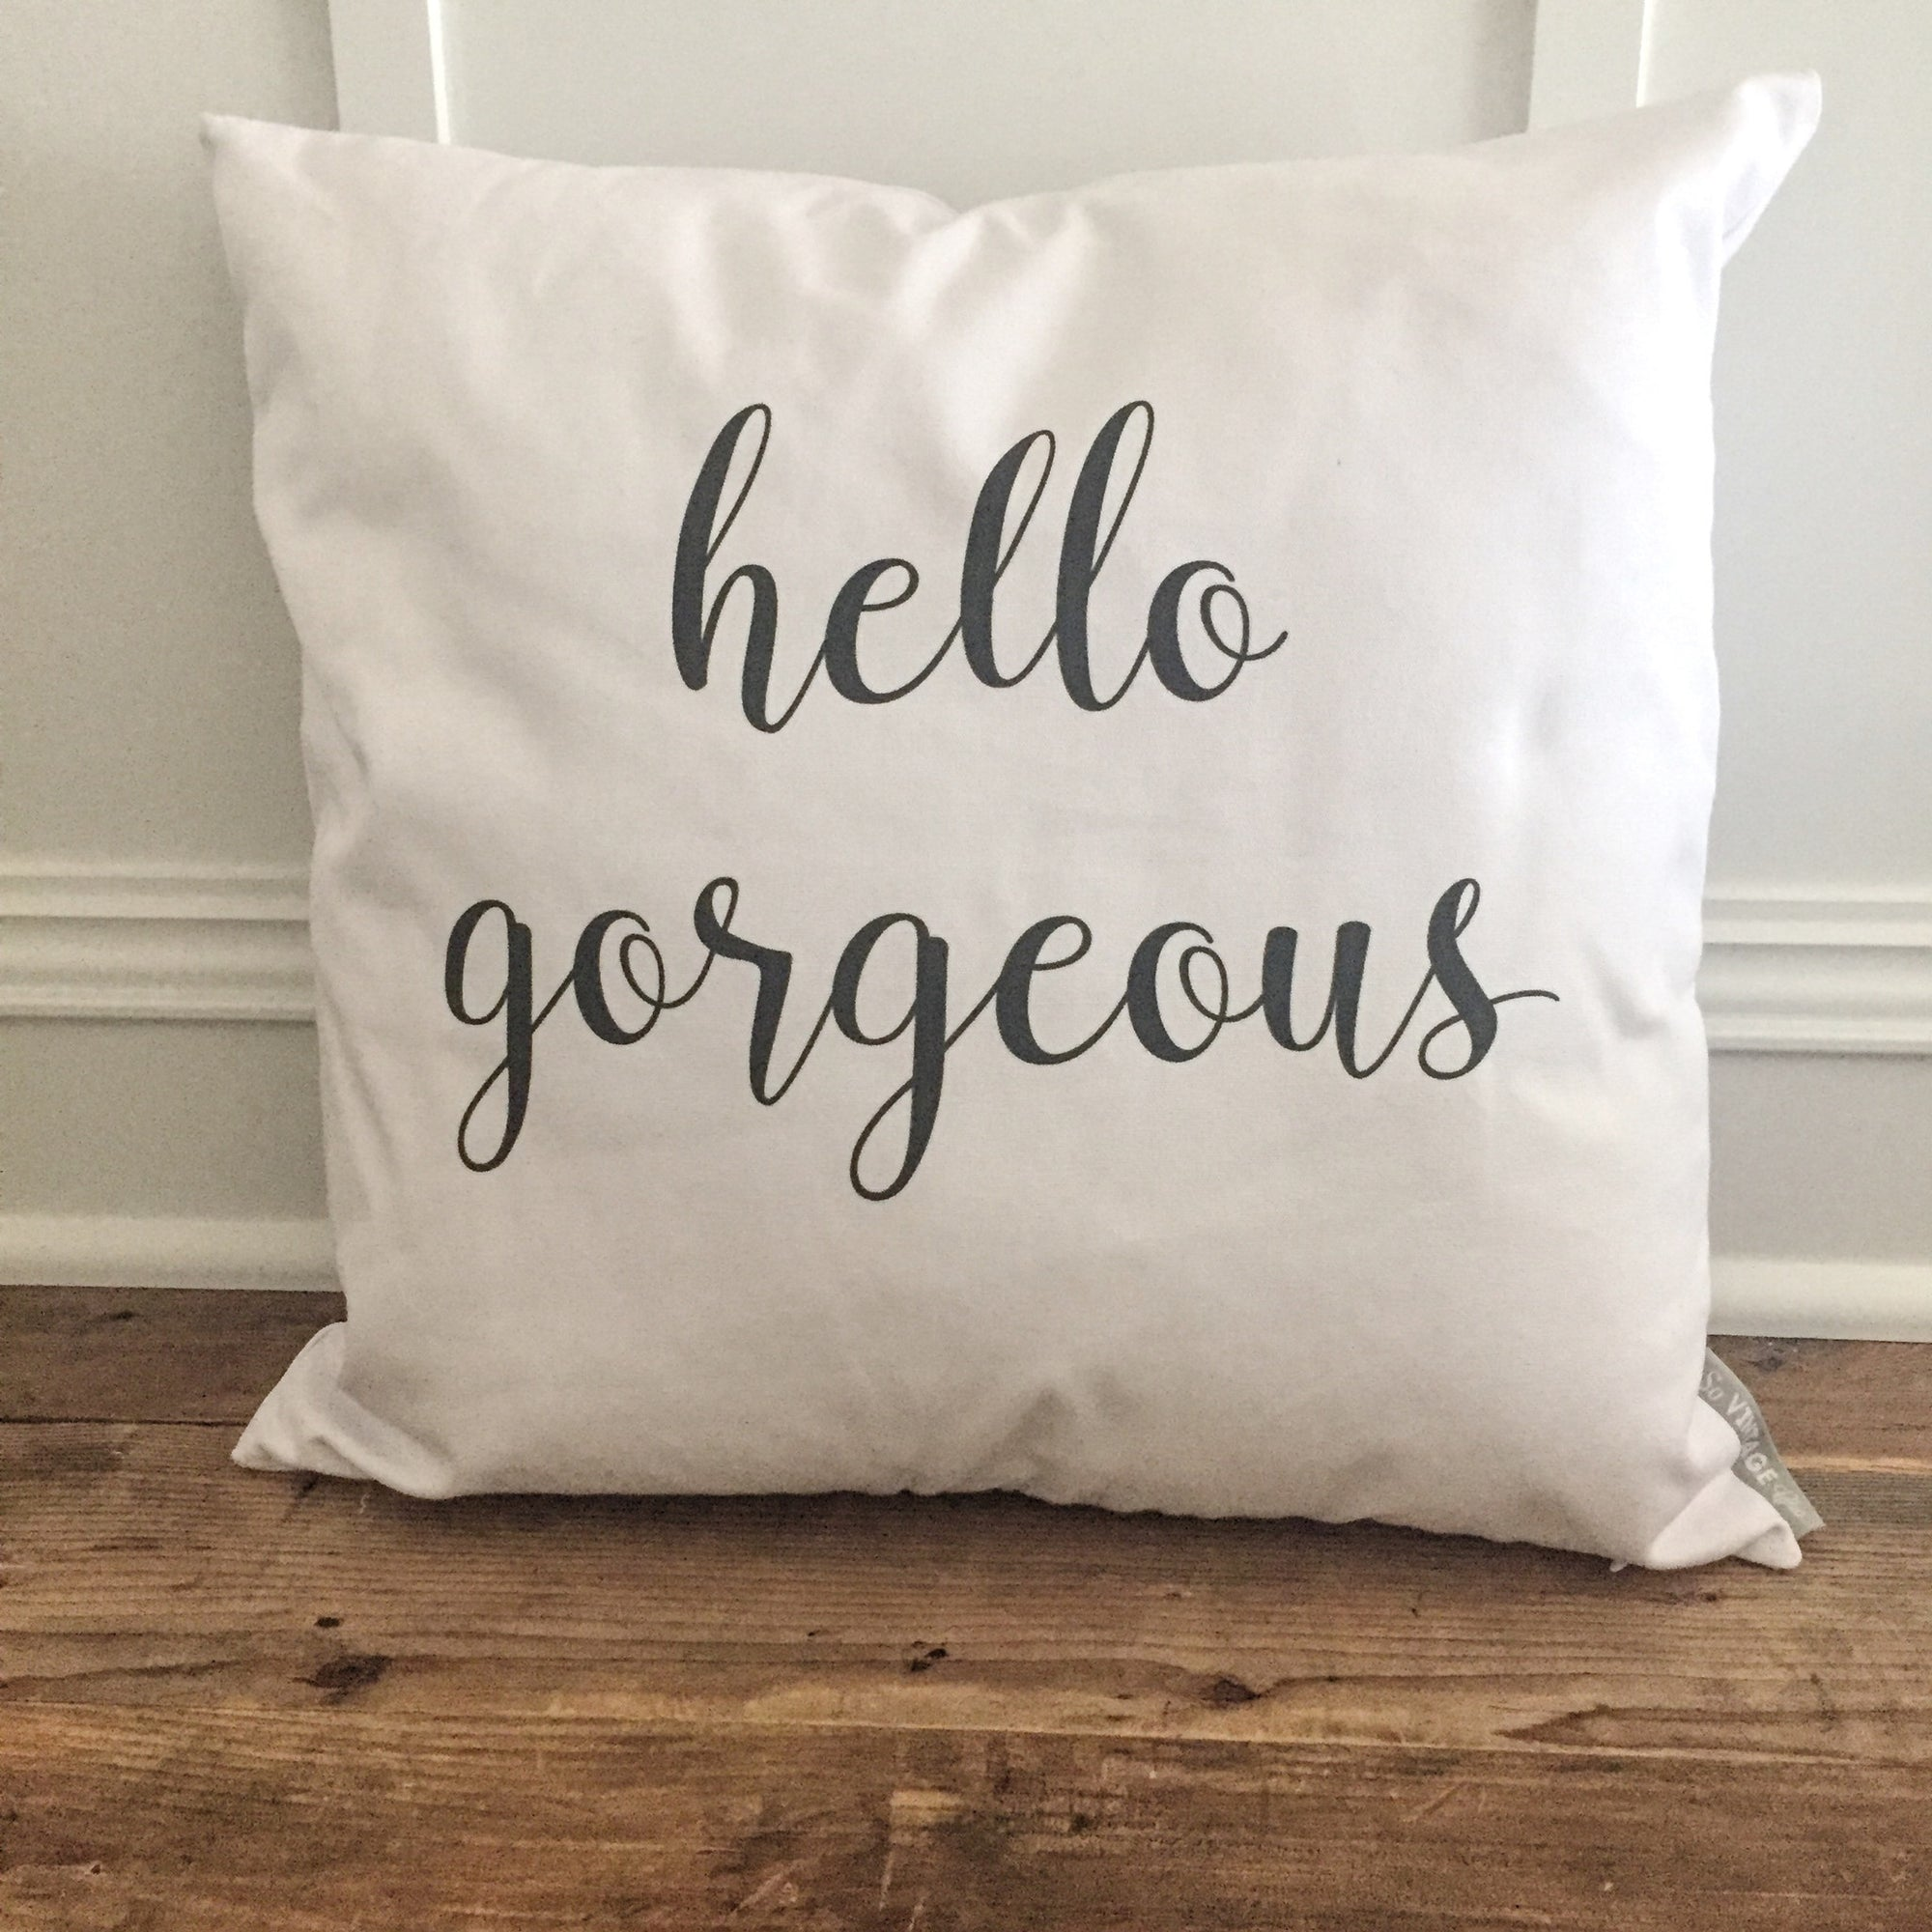 Hello Gorgeous Pillow Cover - Linen and Ivory